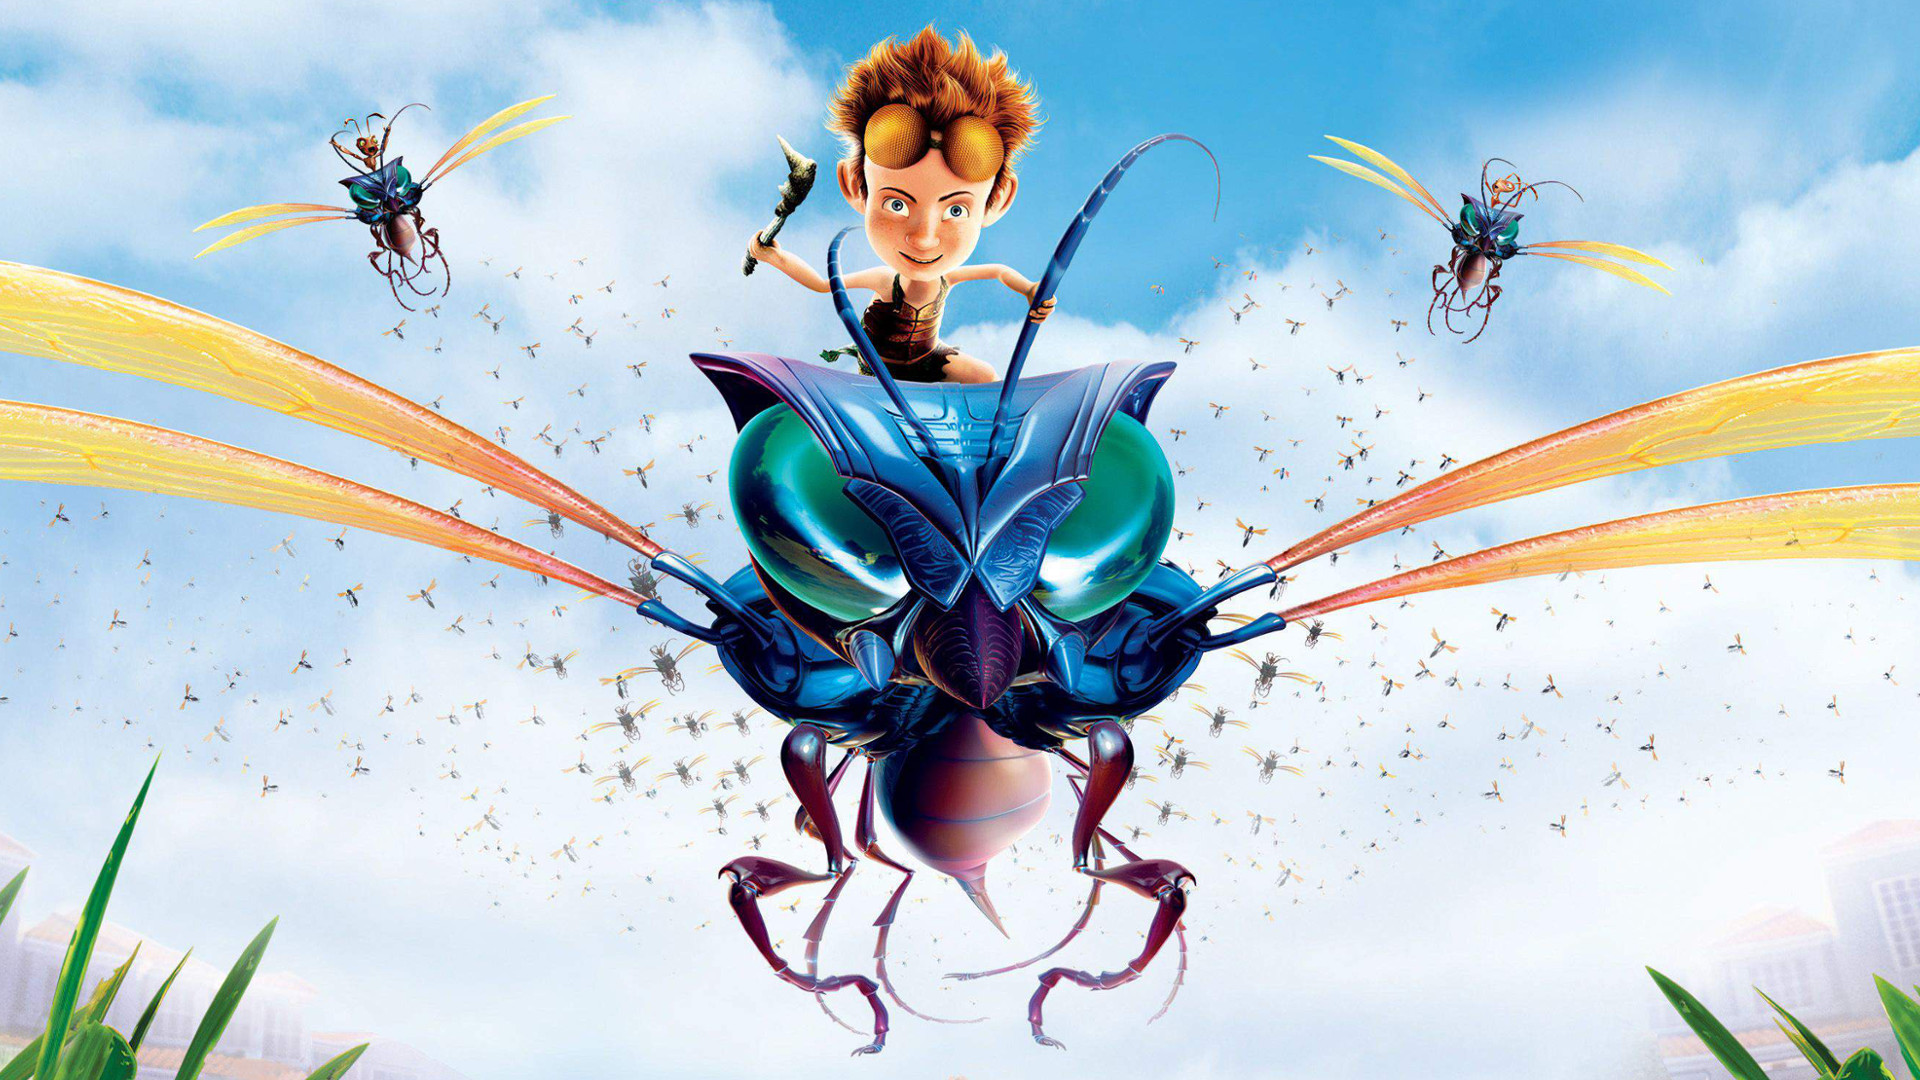 The Ant Bully Wallpapers Hd Desktop And Mobile Backgrounds